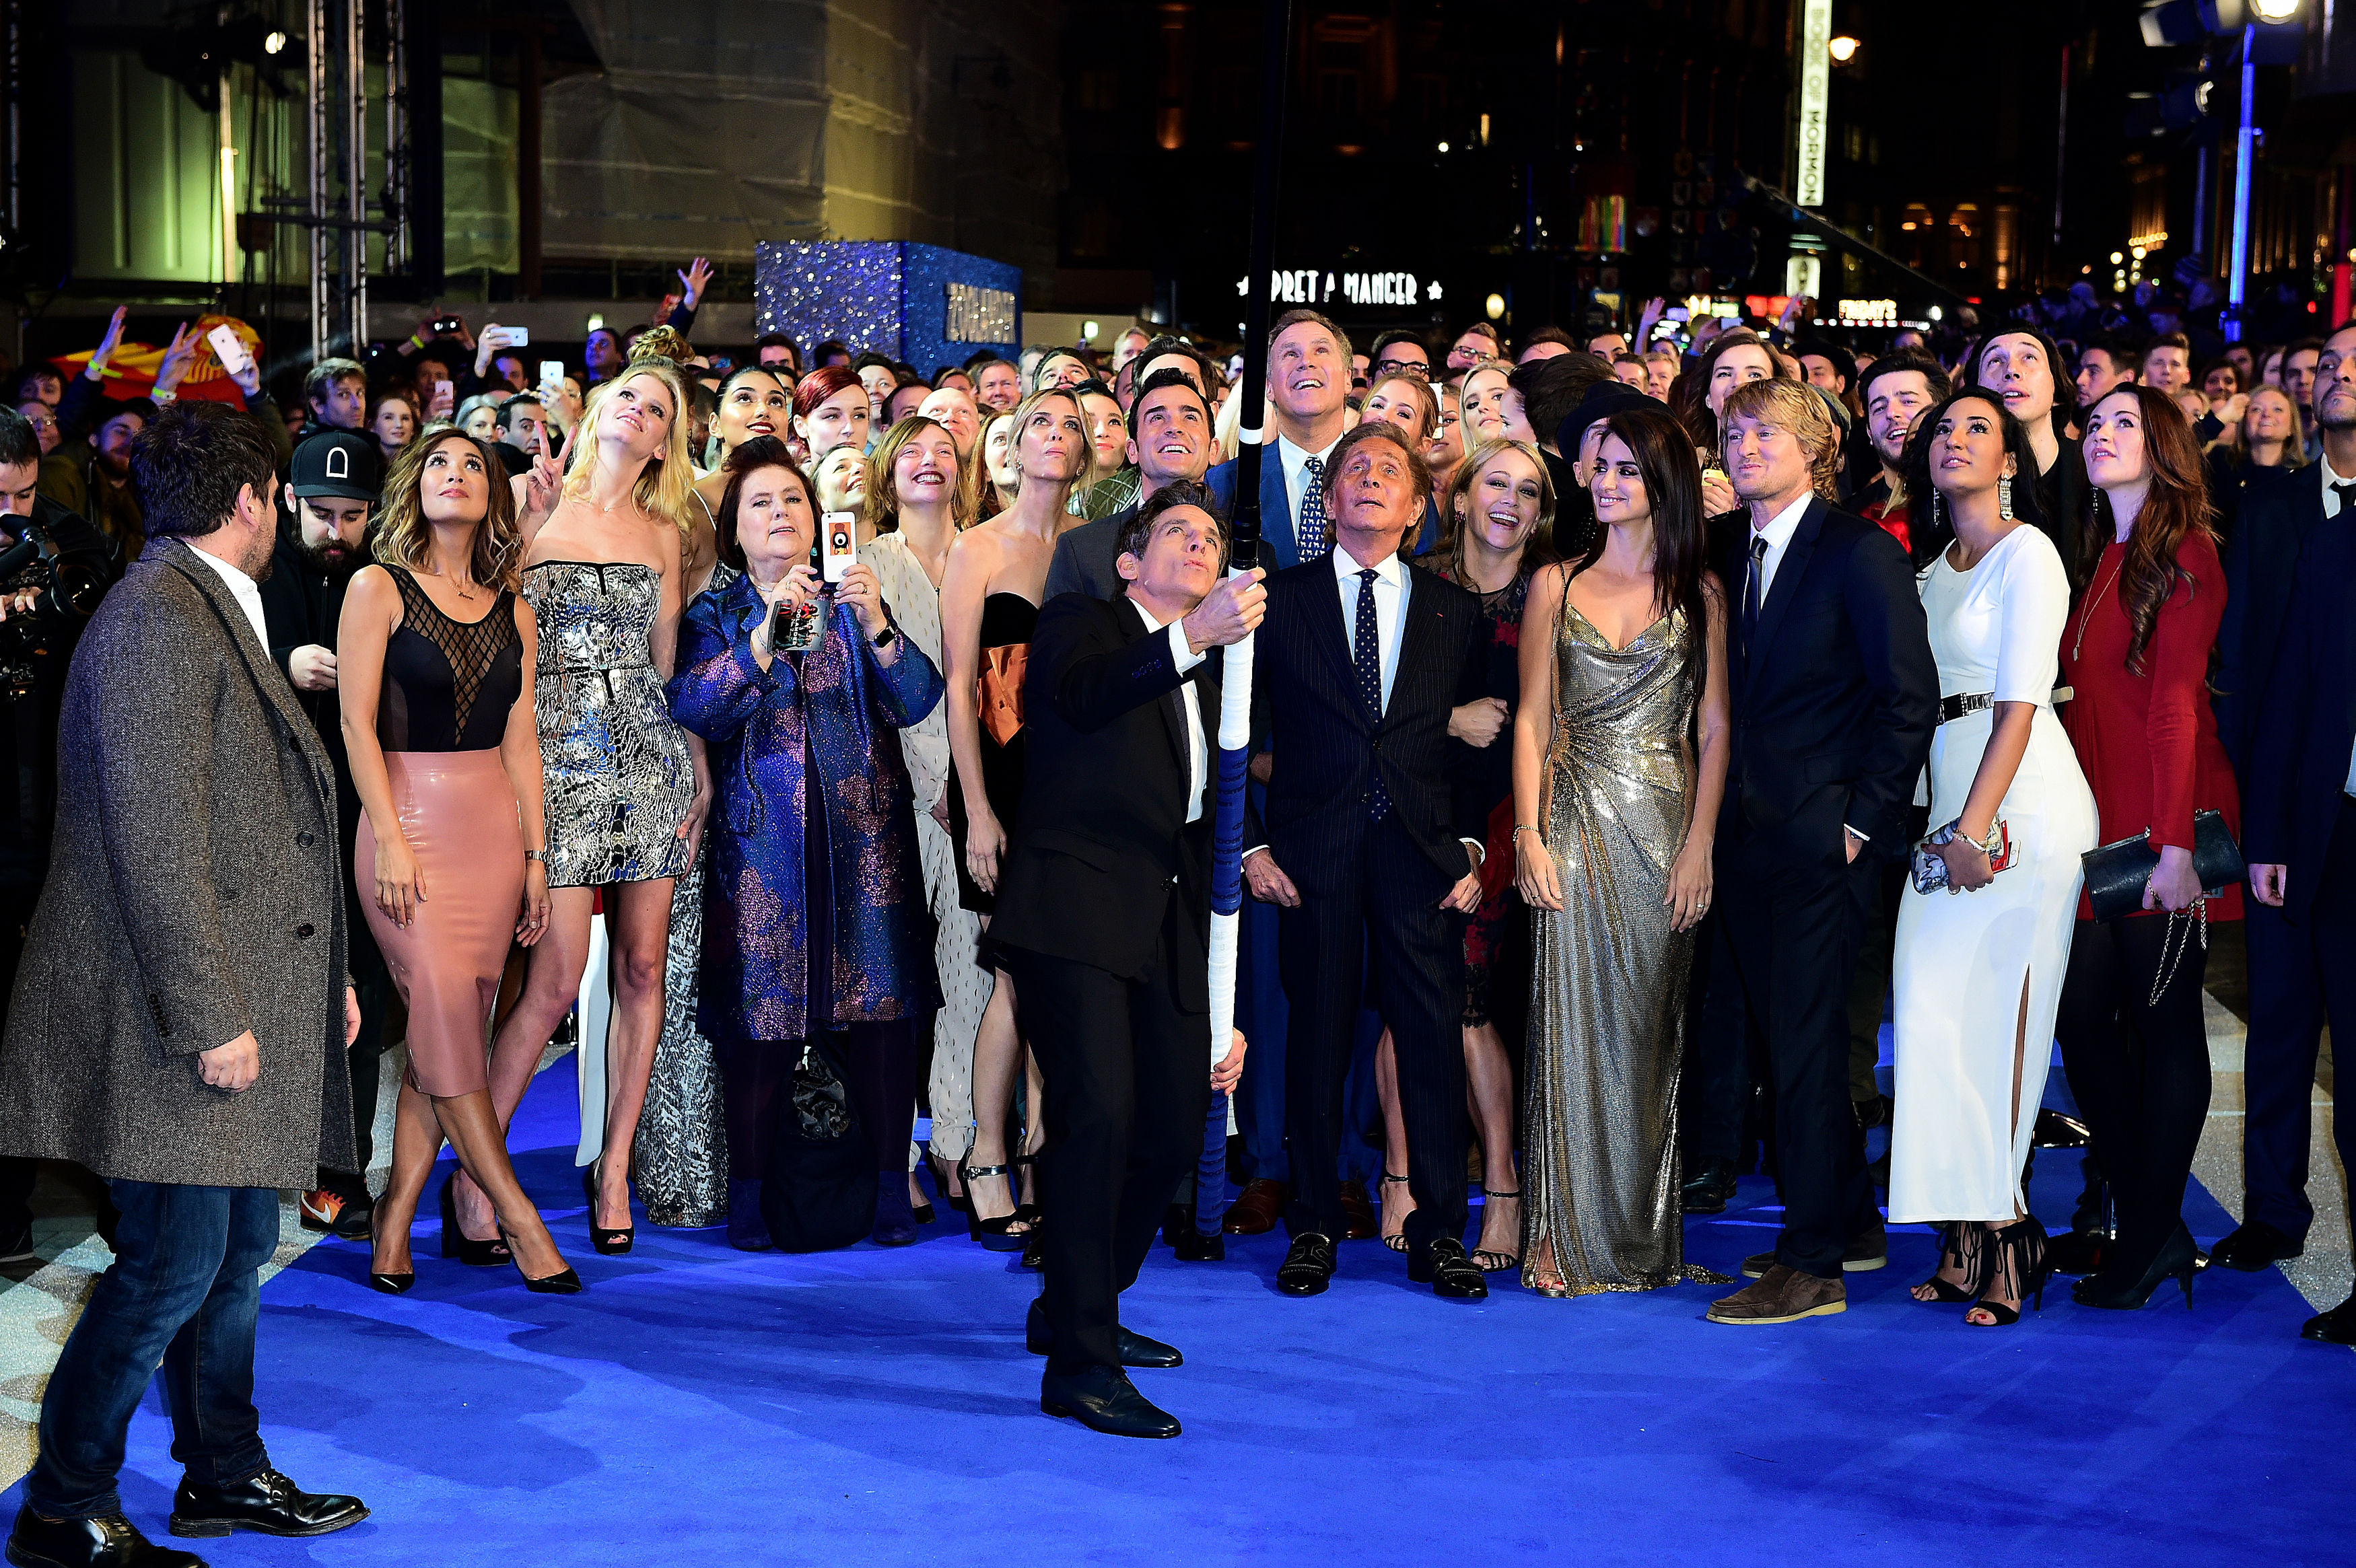 Ben Stiller attempts a world record for longest selfie stick with guests whilst attending the Zoolander 2 UK premiere, held at the Empire, Leicester Square, London. PRESS ASSOCIATION Photo. Picture date: Thursday February 4, 2016. Photo credit should read: Ian West/PA Wire